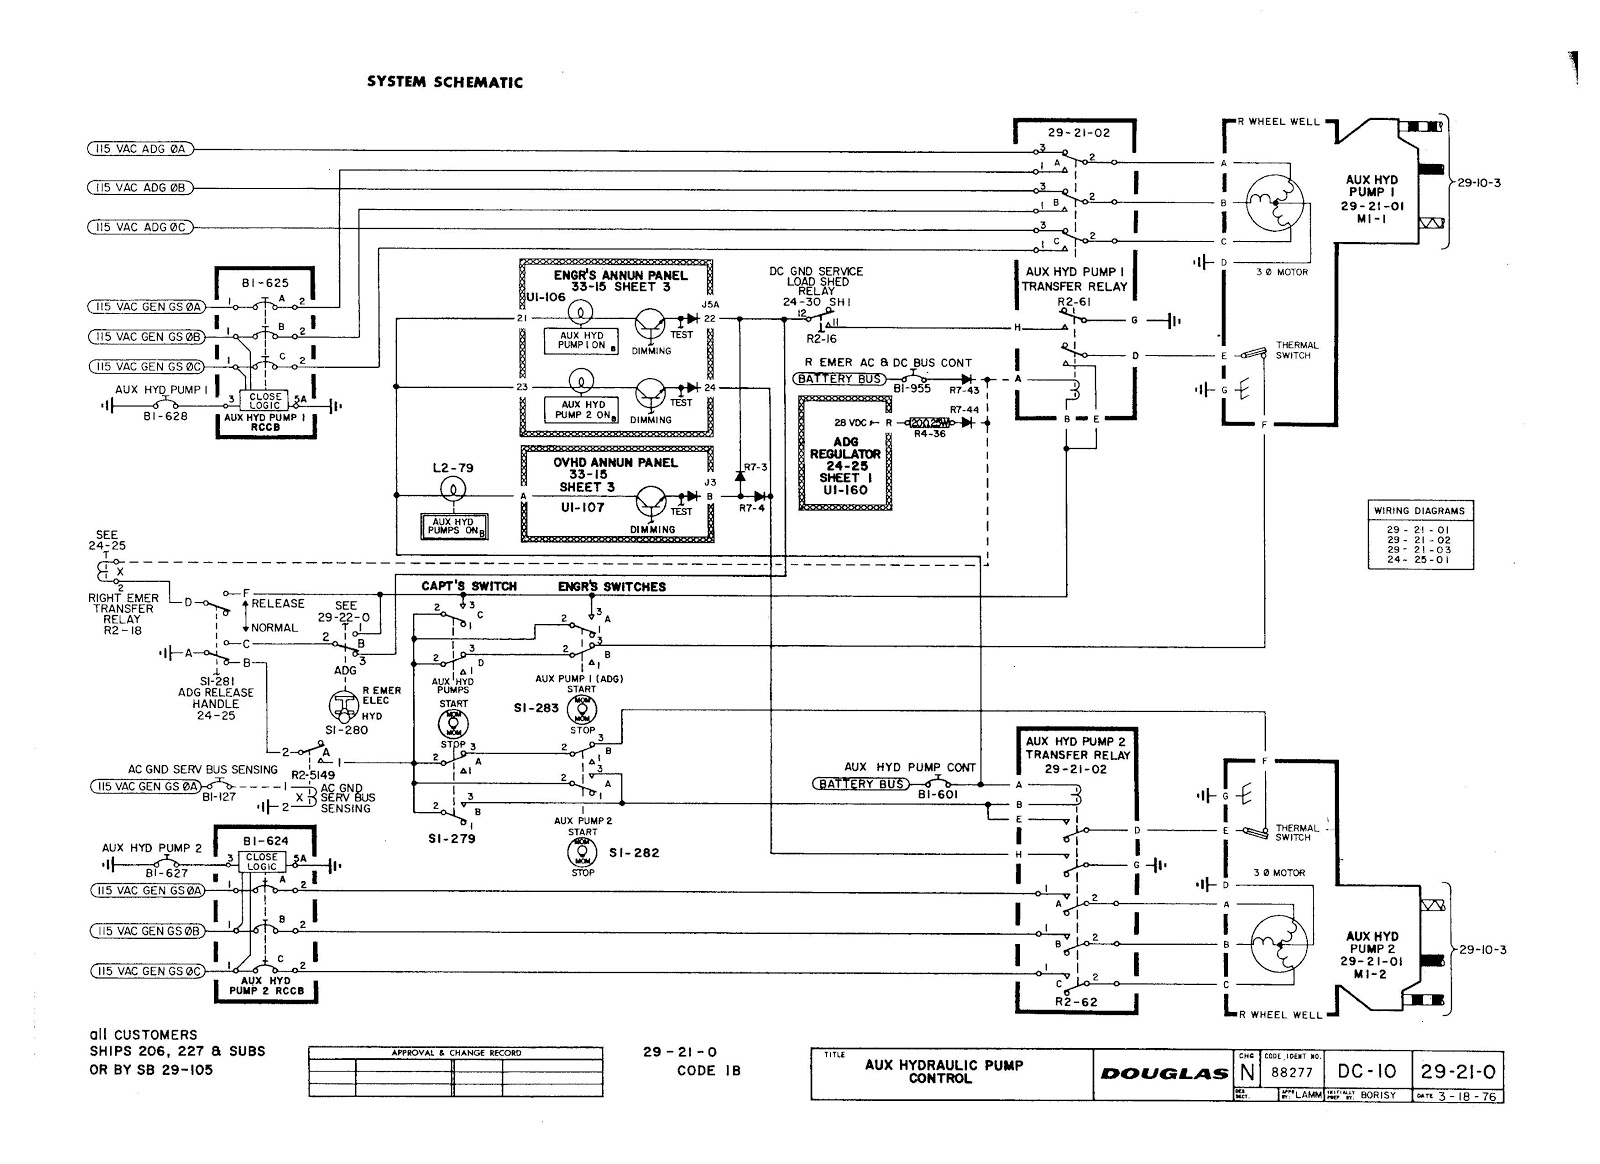 dc 10 wiring diagram wiring diagram yer dc 10 wiring diagram [ 1600 x 1164 Pixel ]